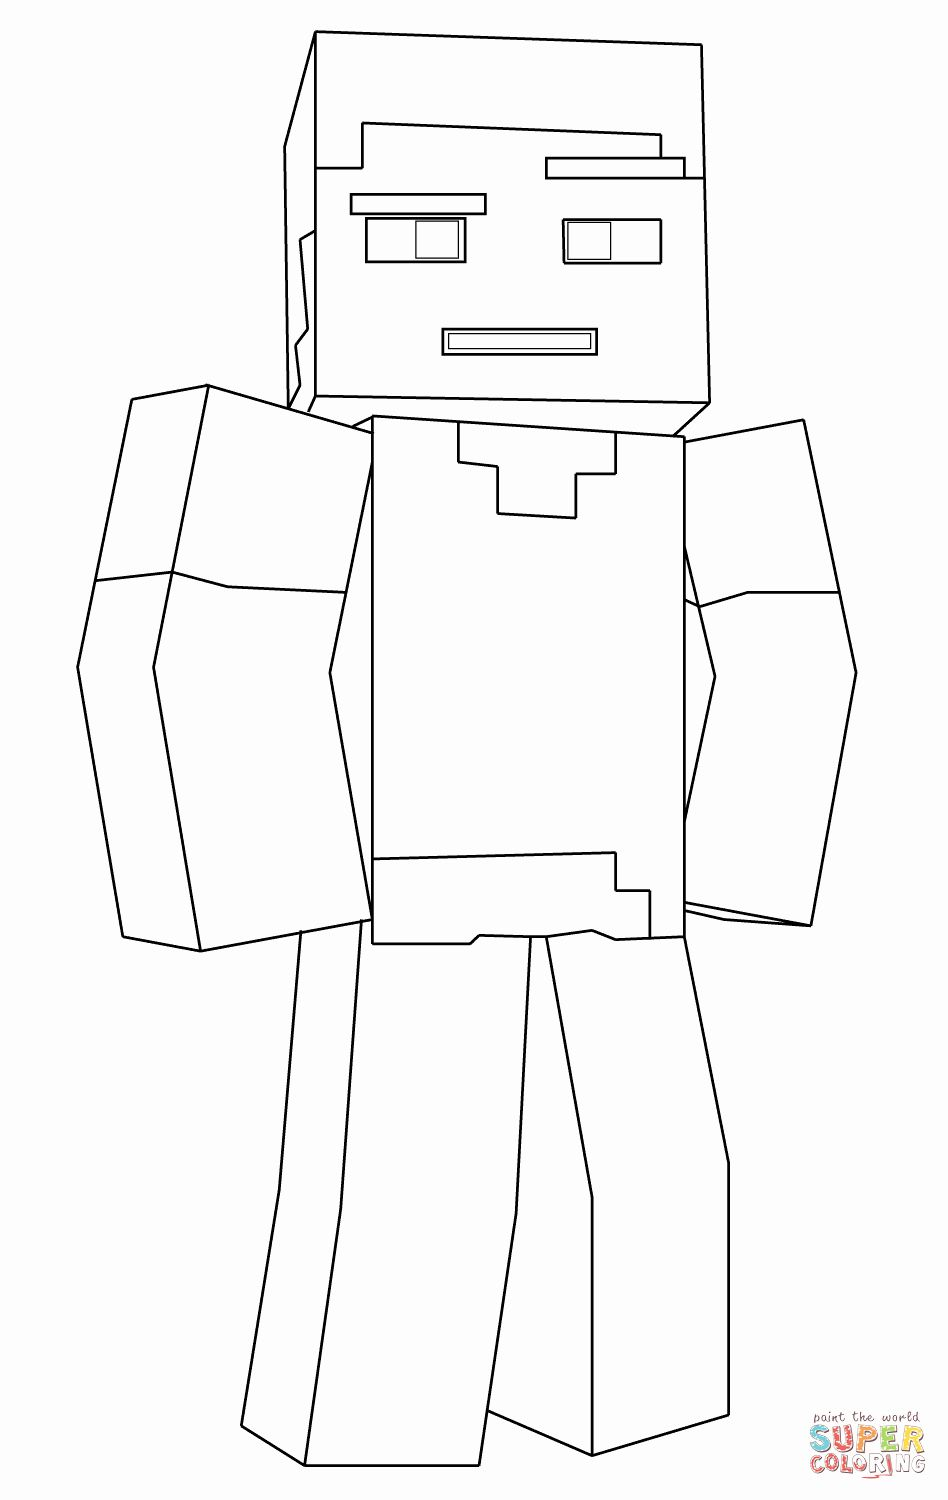 Minecraft Steve Coloring Page Awesome Minecraft Steve Coloring Page Minecraft Steve Minecraft Coloring Pages Coloring Pages Inspirational